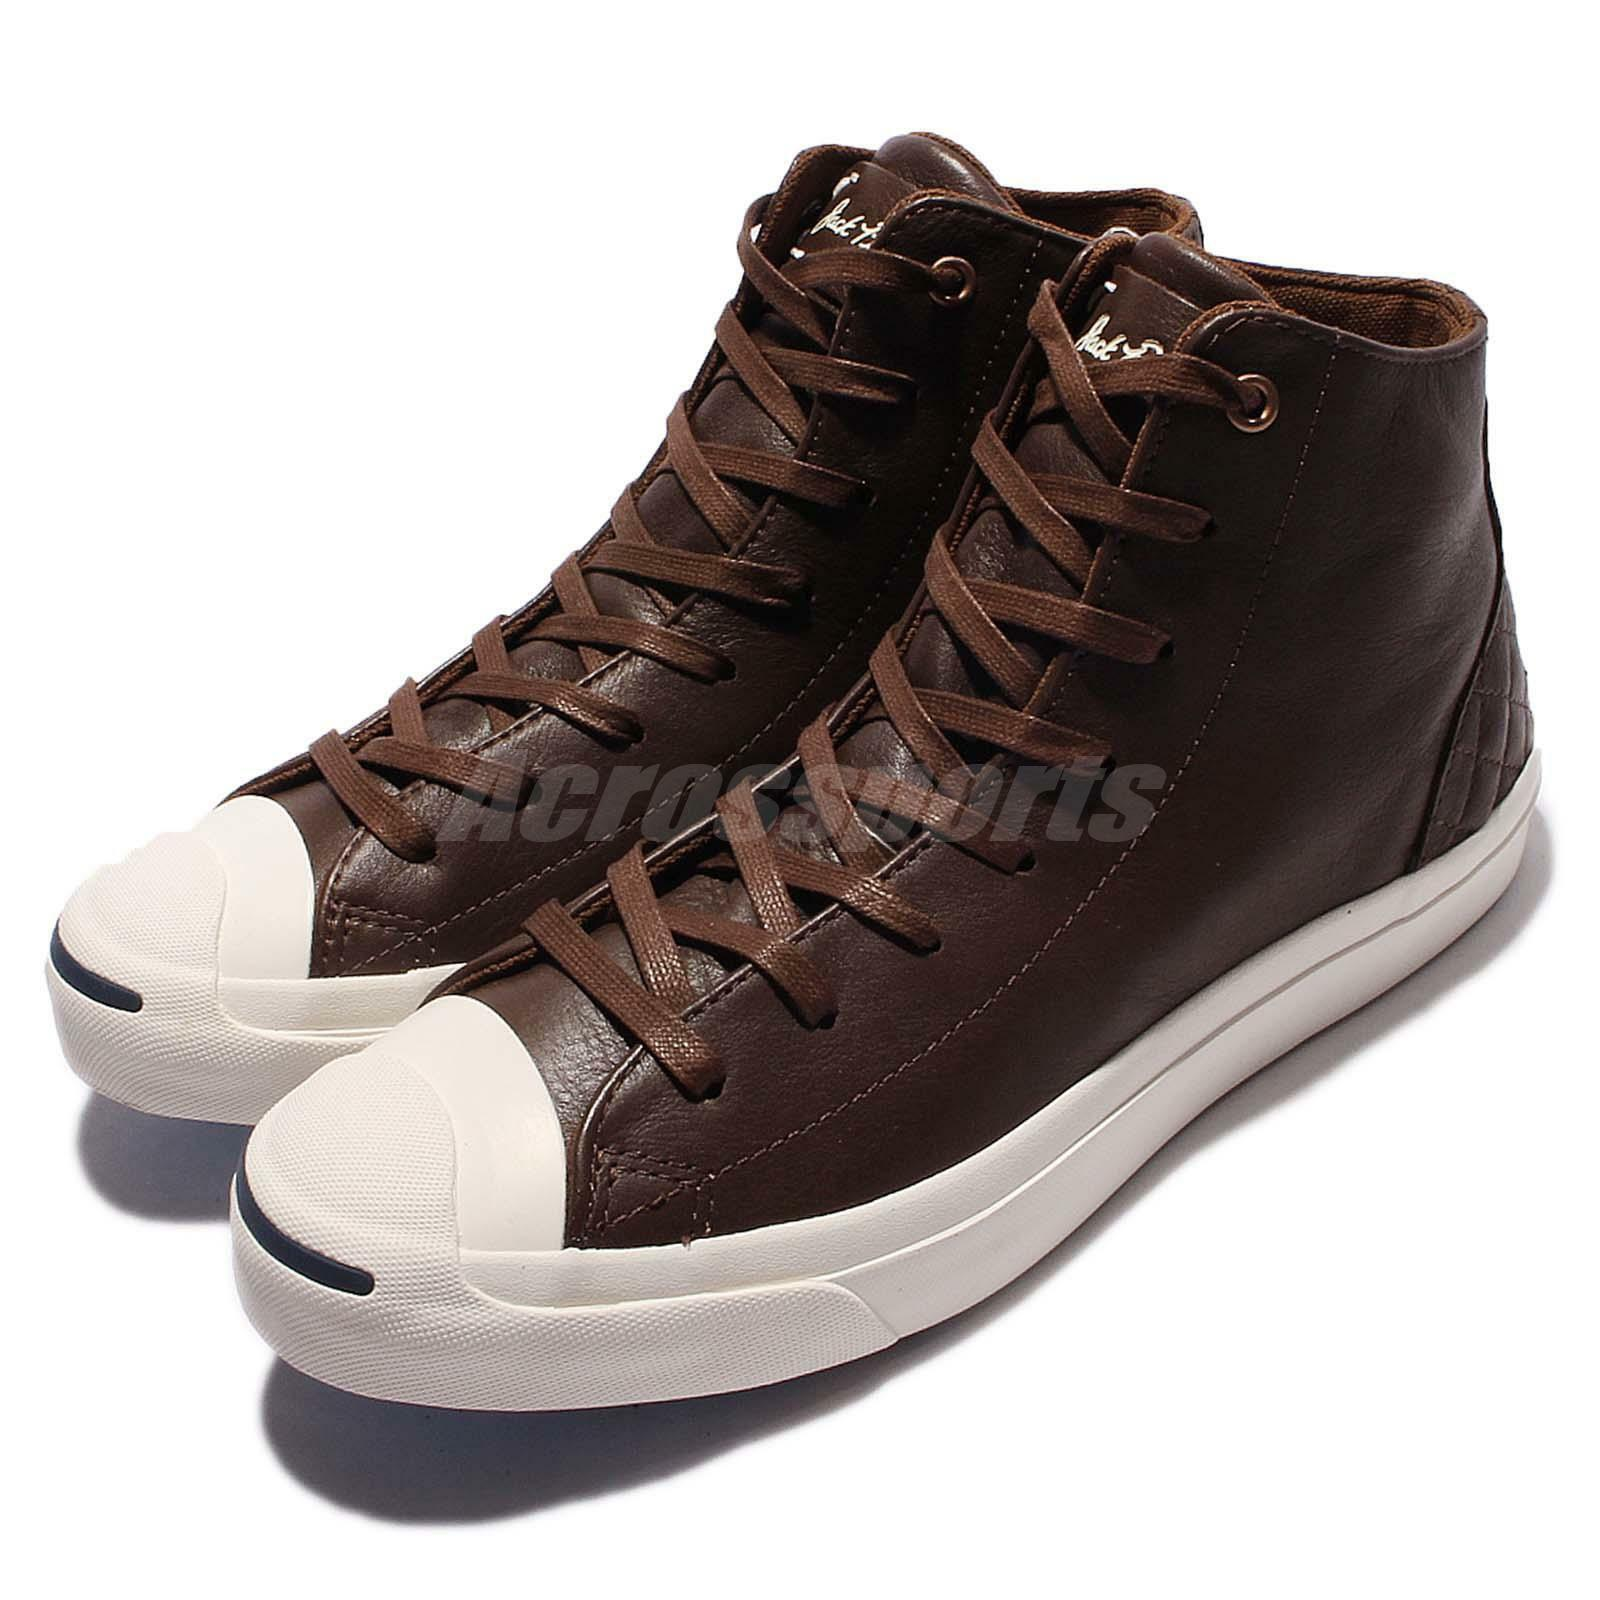 Converse Jack Purcell Jack Mid Pelle Brown White Uomo Casual Casual Casual Shoes 154150C 90f60b